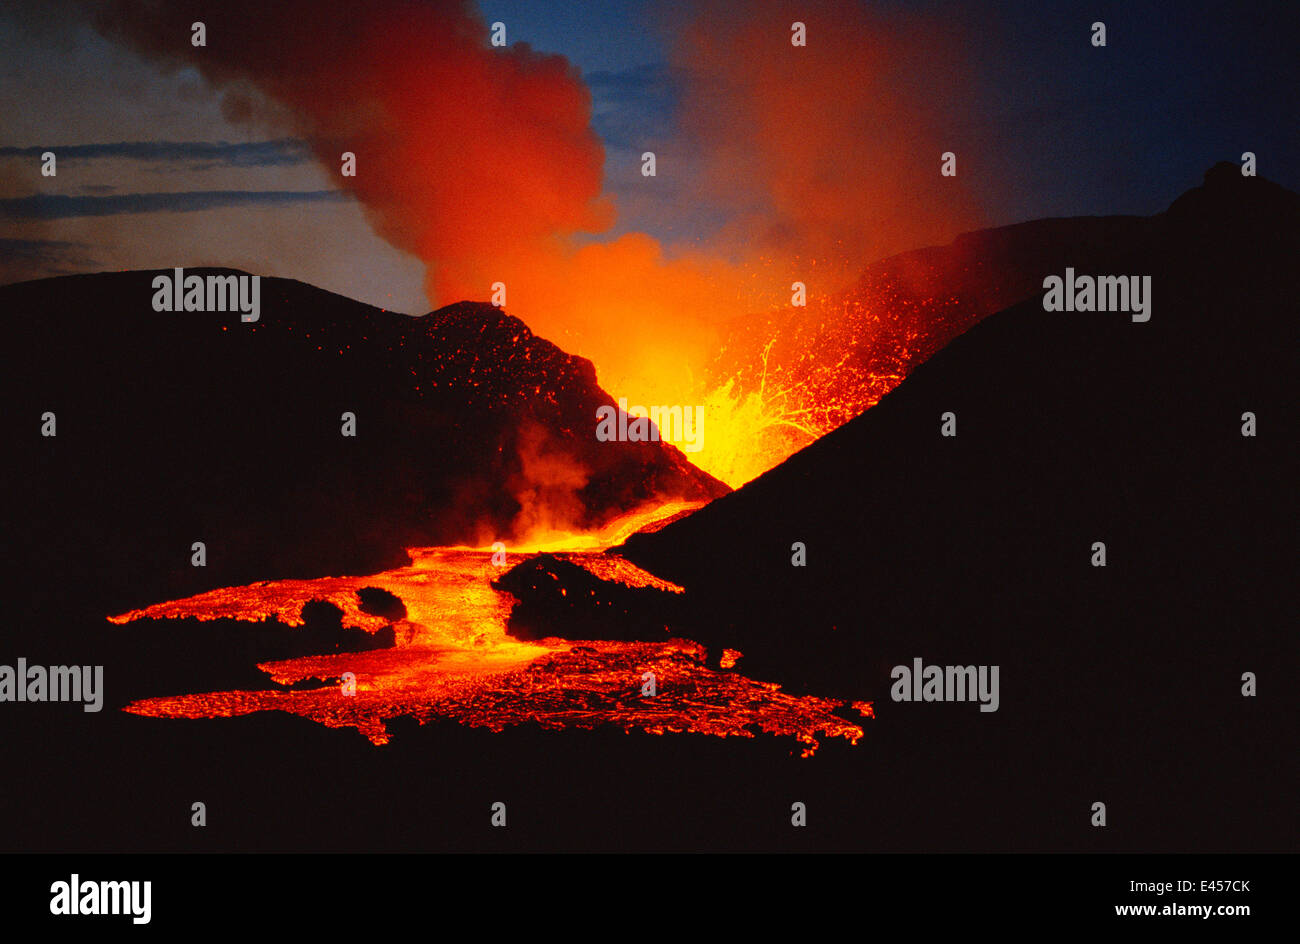 Red hot lava flow from Kimanura volcano eruption, Virunga NP, Dem Rep of Congo 1989 Africa Stock Photo